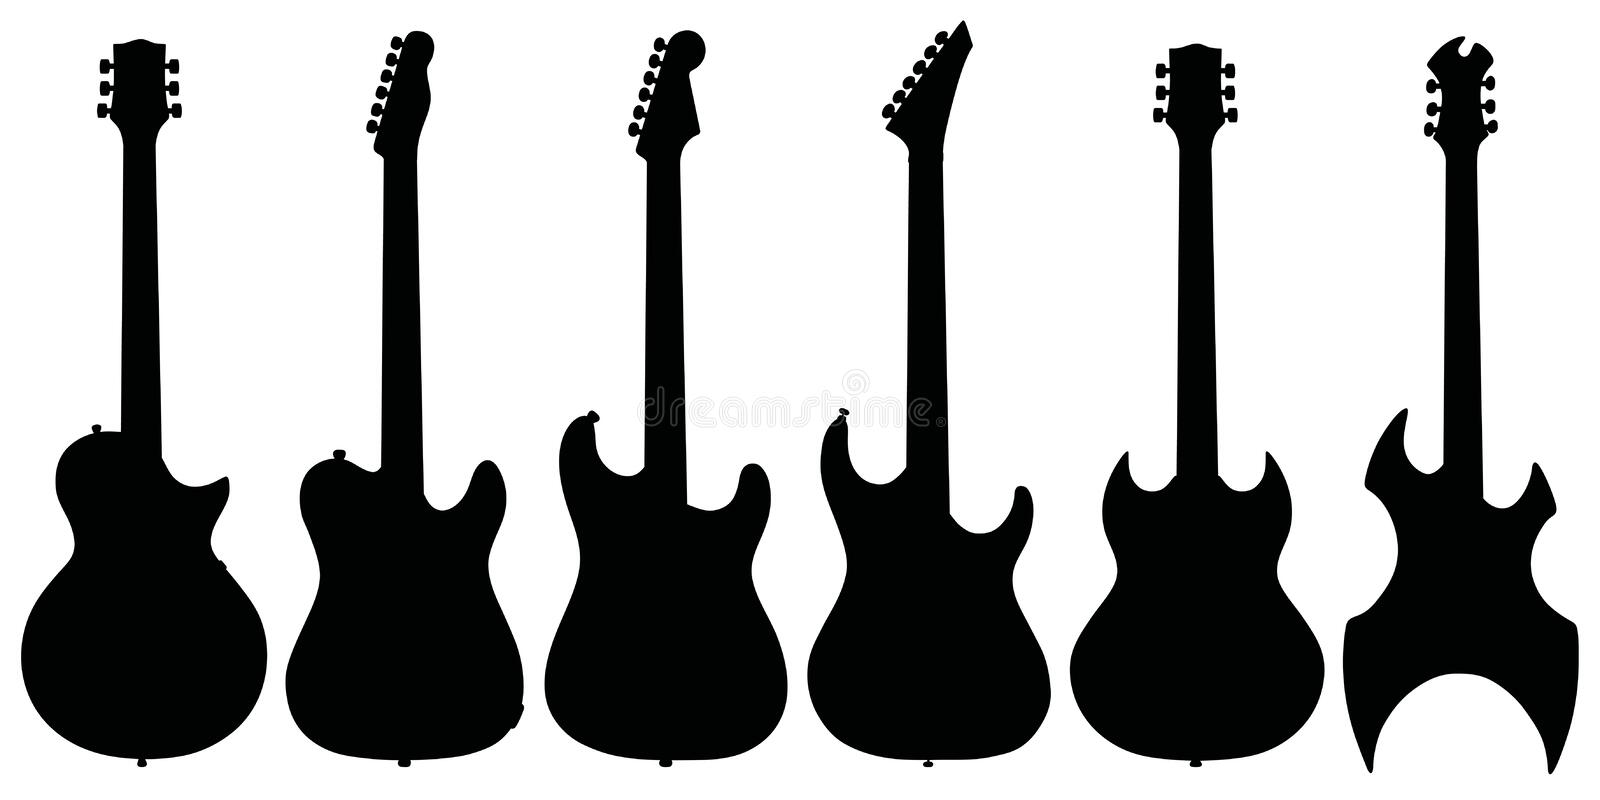 Electric guitars vector illustration